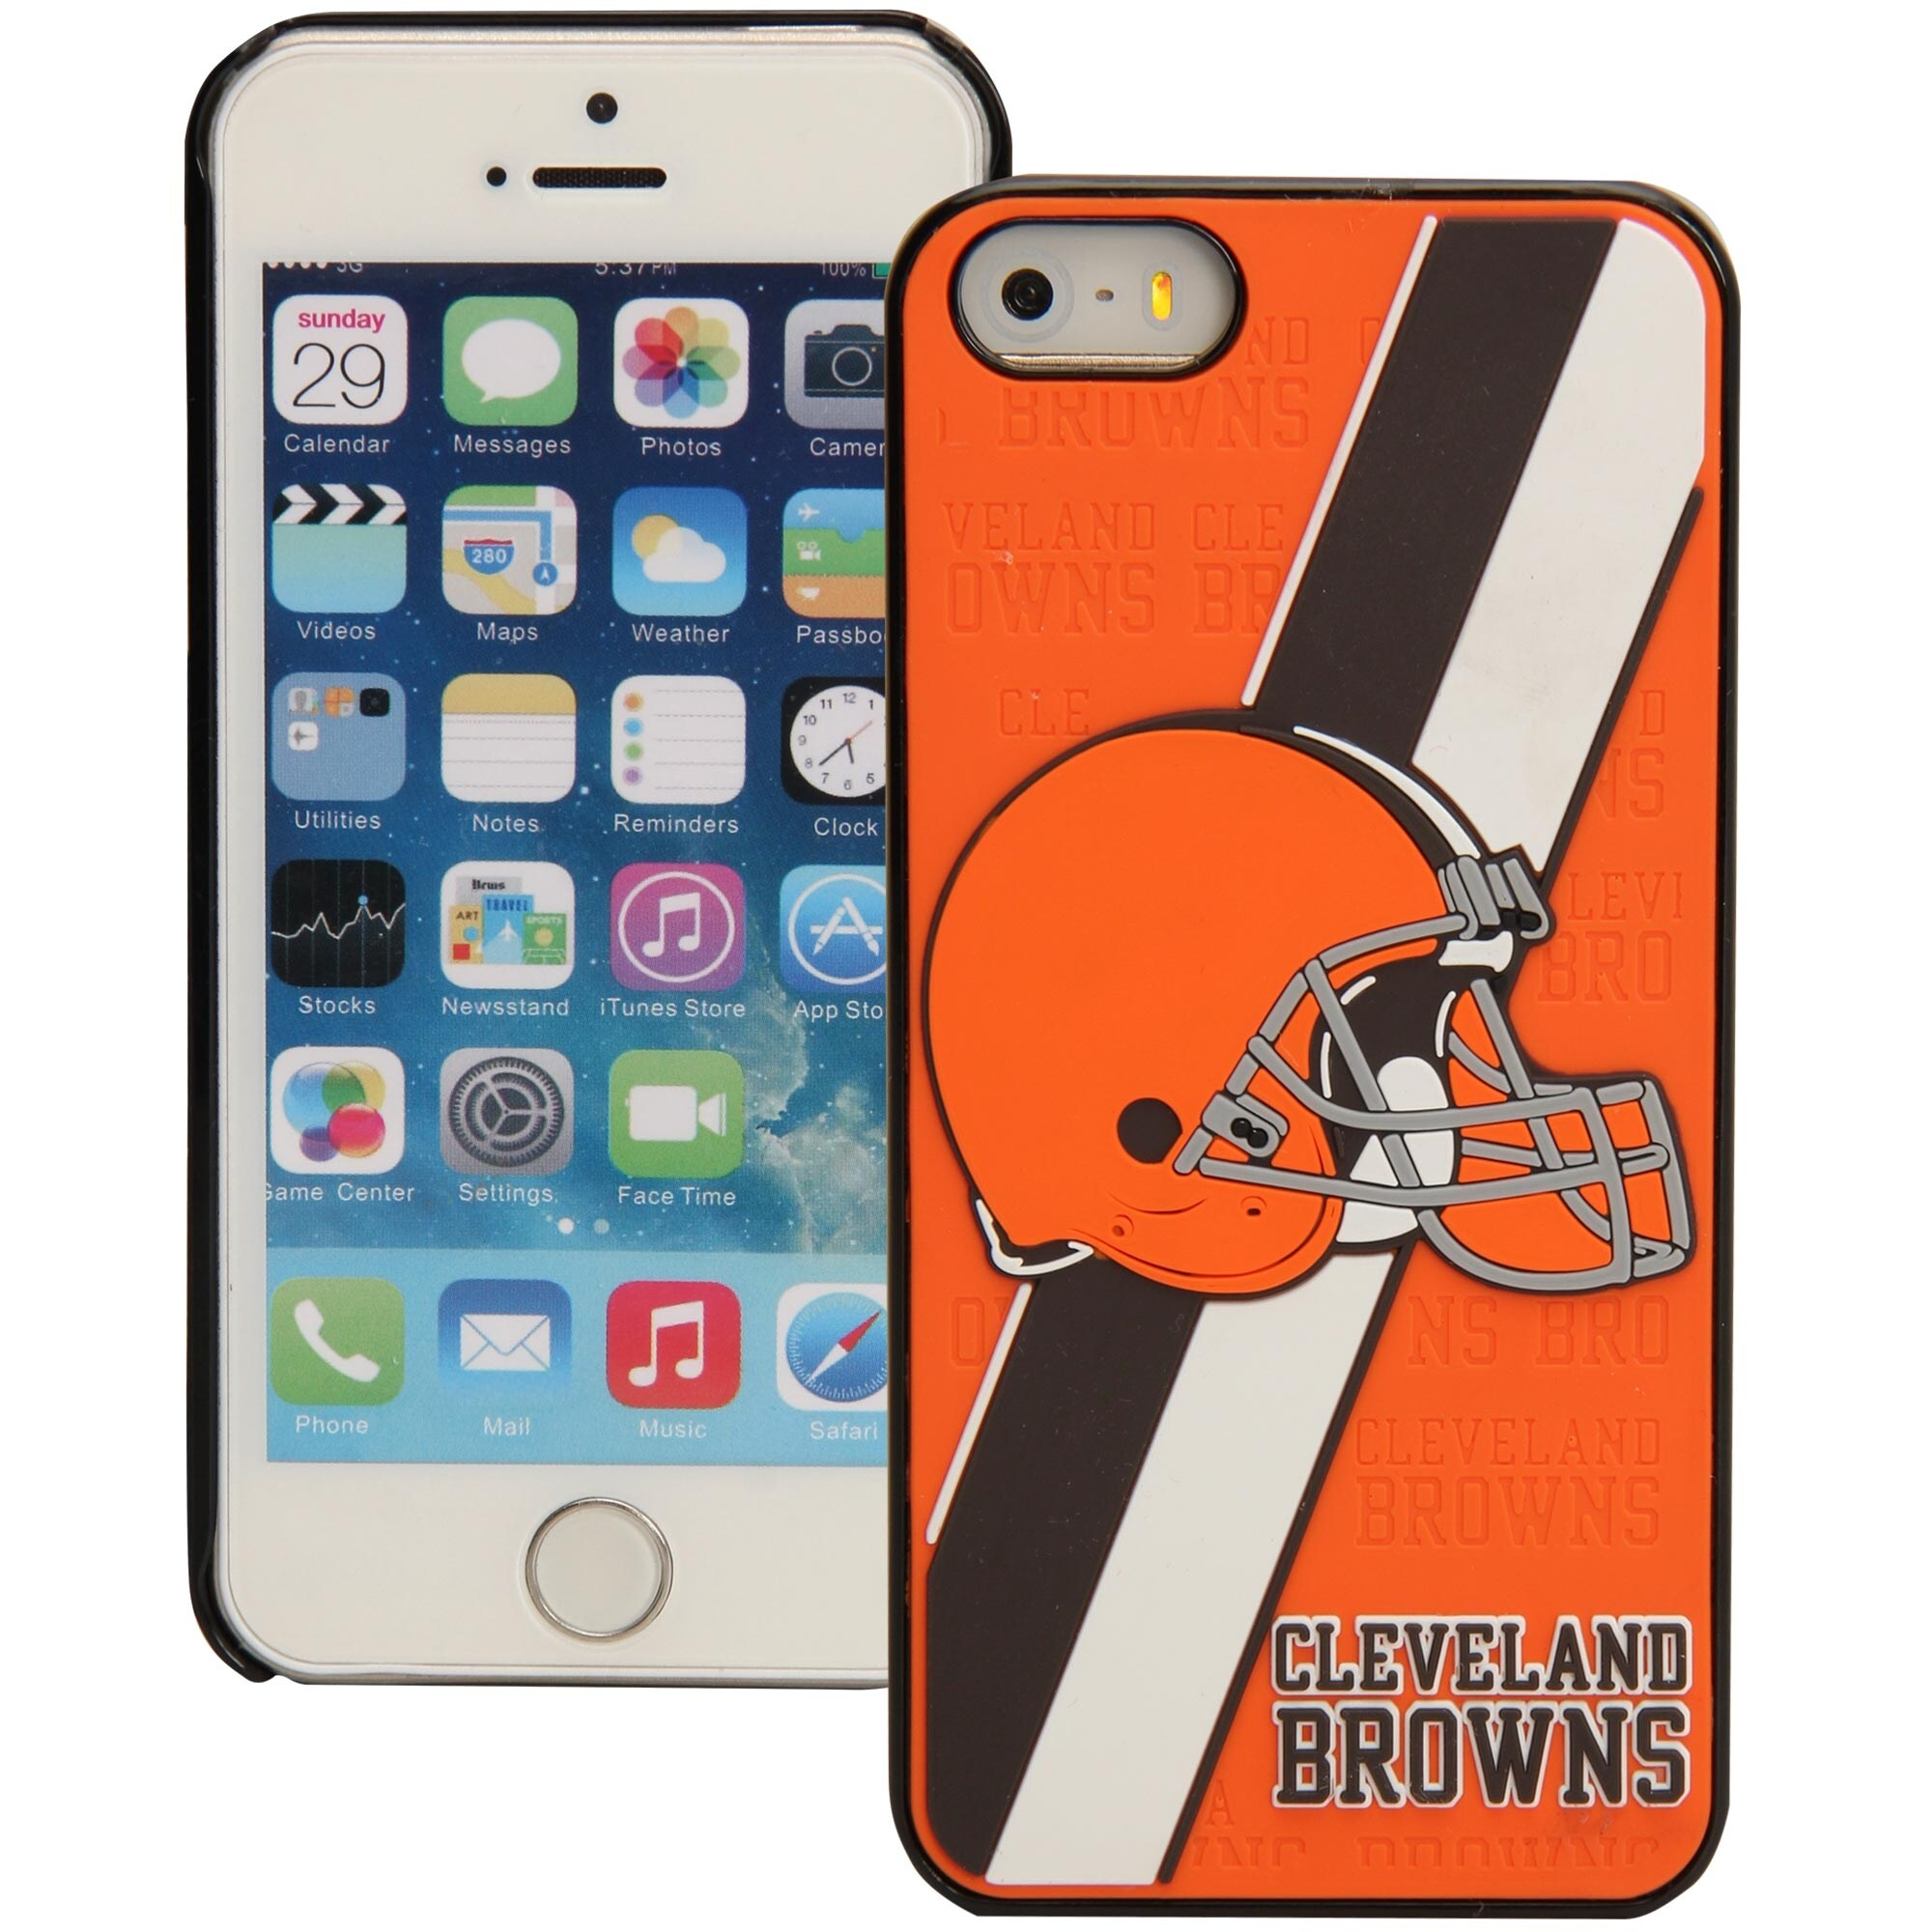 Cleveland Browns Historic Logo iPhone 5 Hard Case